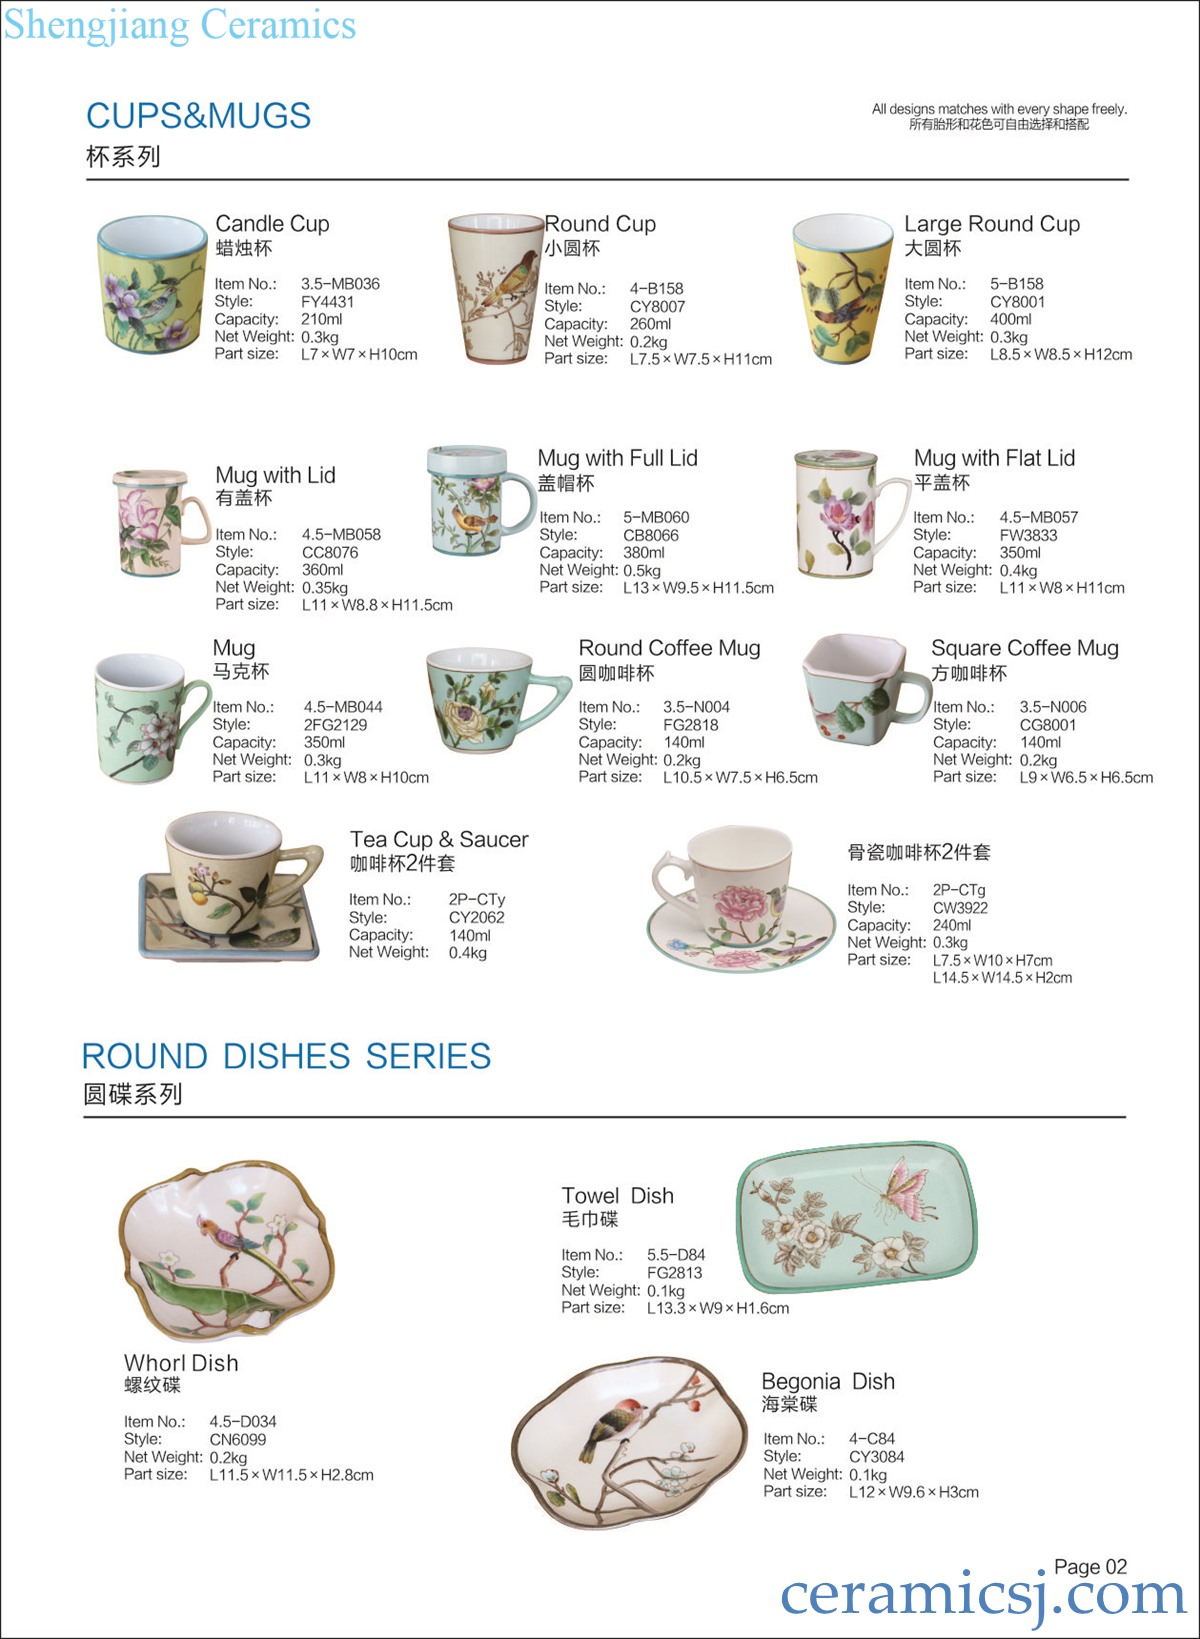 ShengJiang new Colorful handpainted dishes&plates, tea sets ,bathroom accesories, ceramic vases, garden drum stools and table lamps